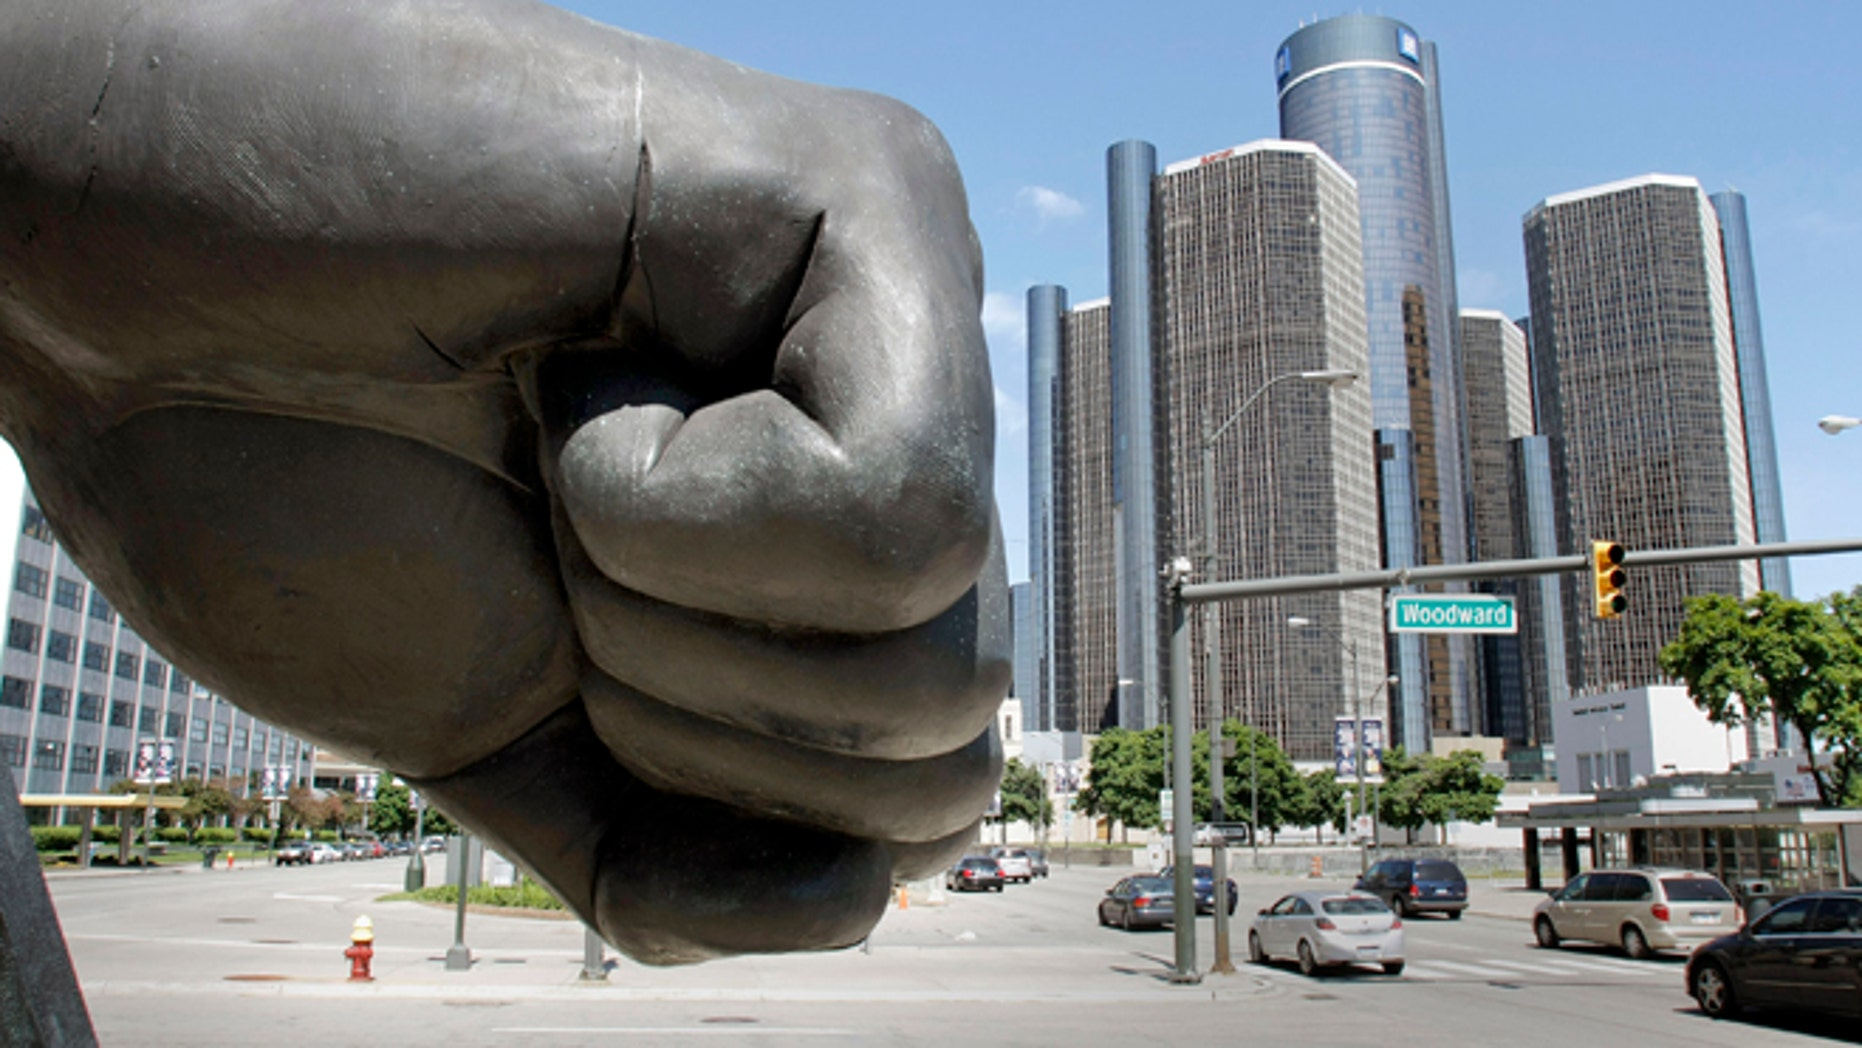 A hand of a large sculpture extends near the General Motors world headquarters on the eve of a possible GM bankruptcy filing May 31, 2009 in Detroit, Michigan.(Photo by Bill Pugliano/Getty Images)